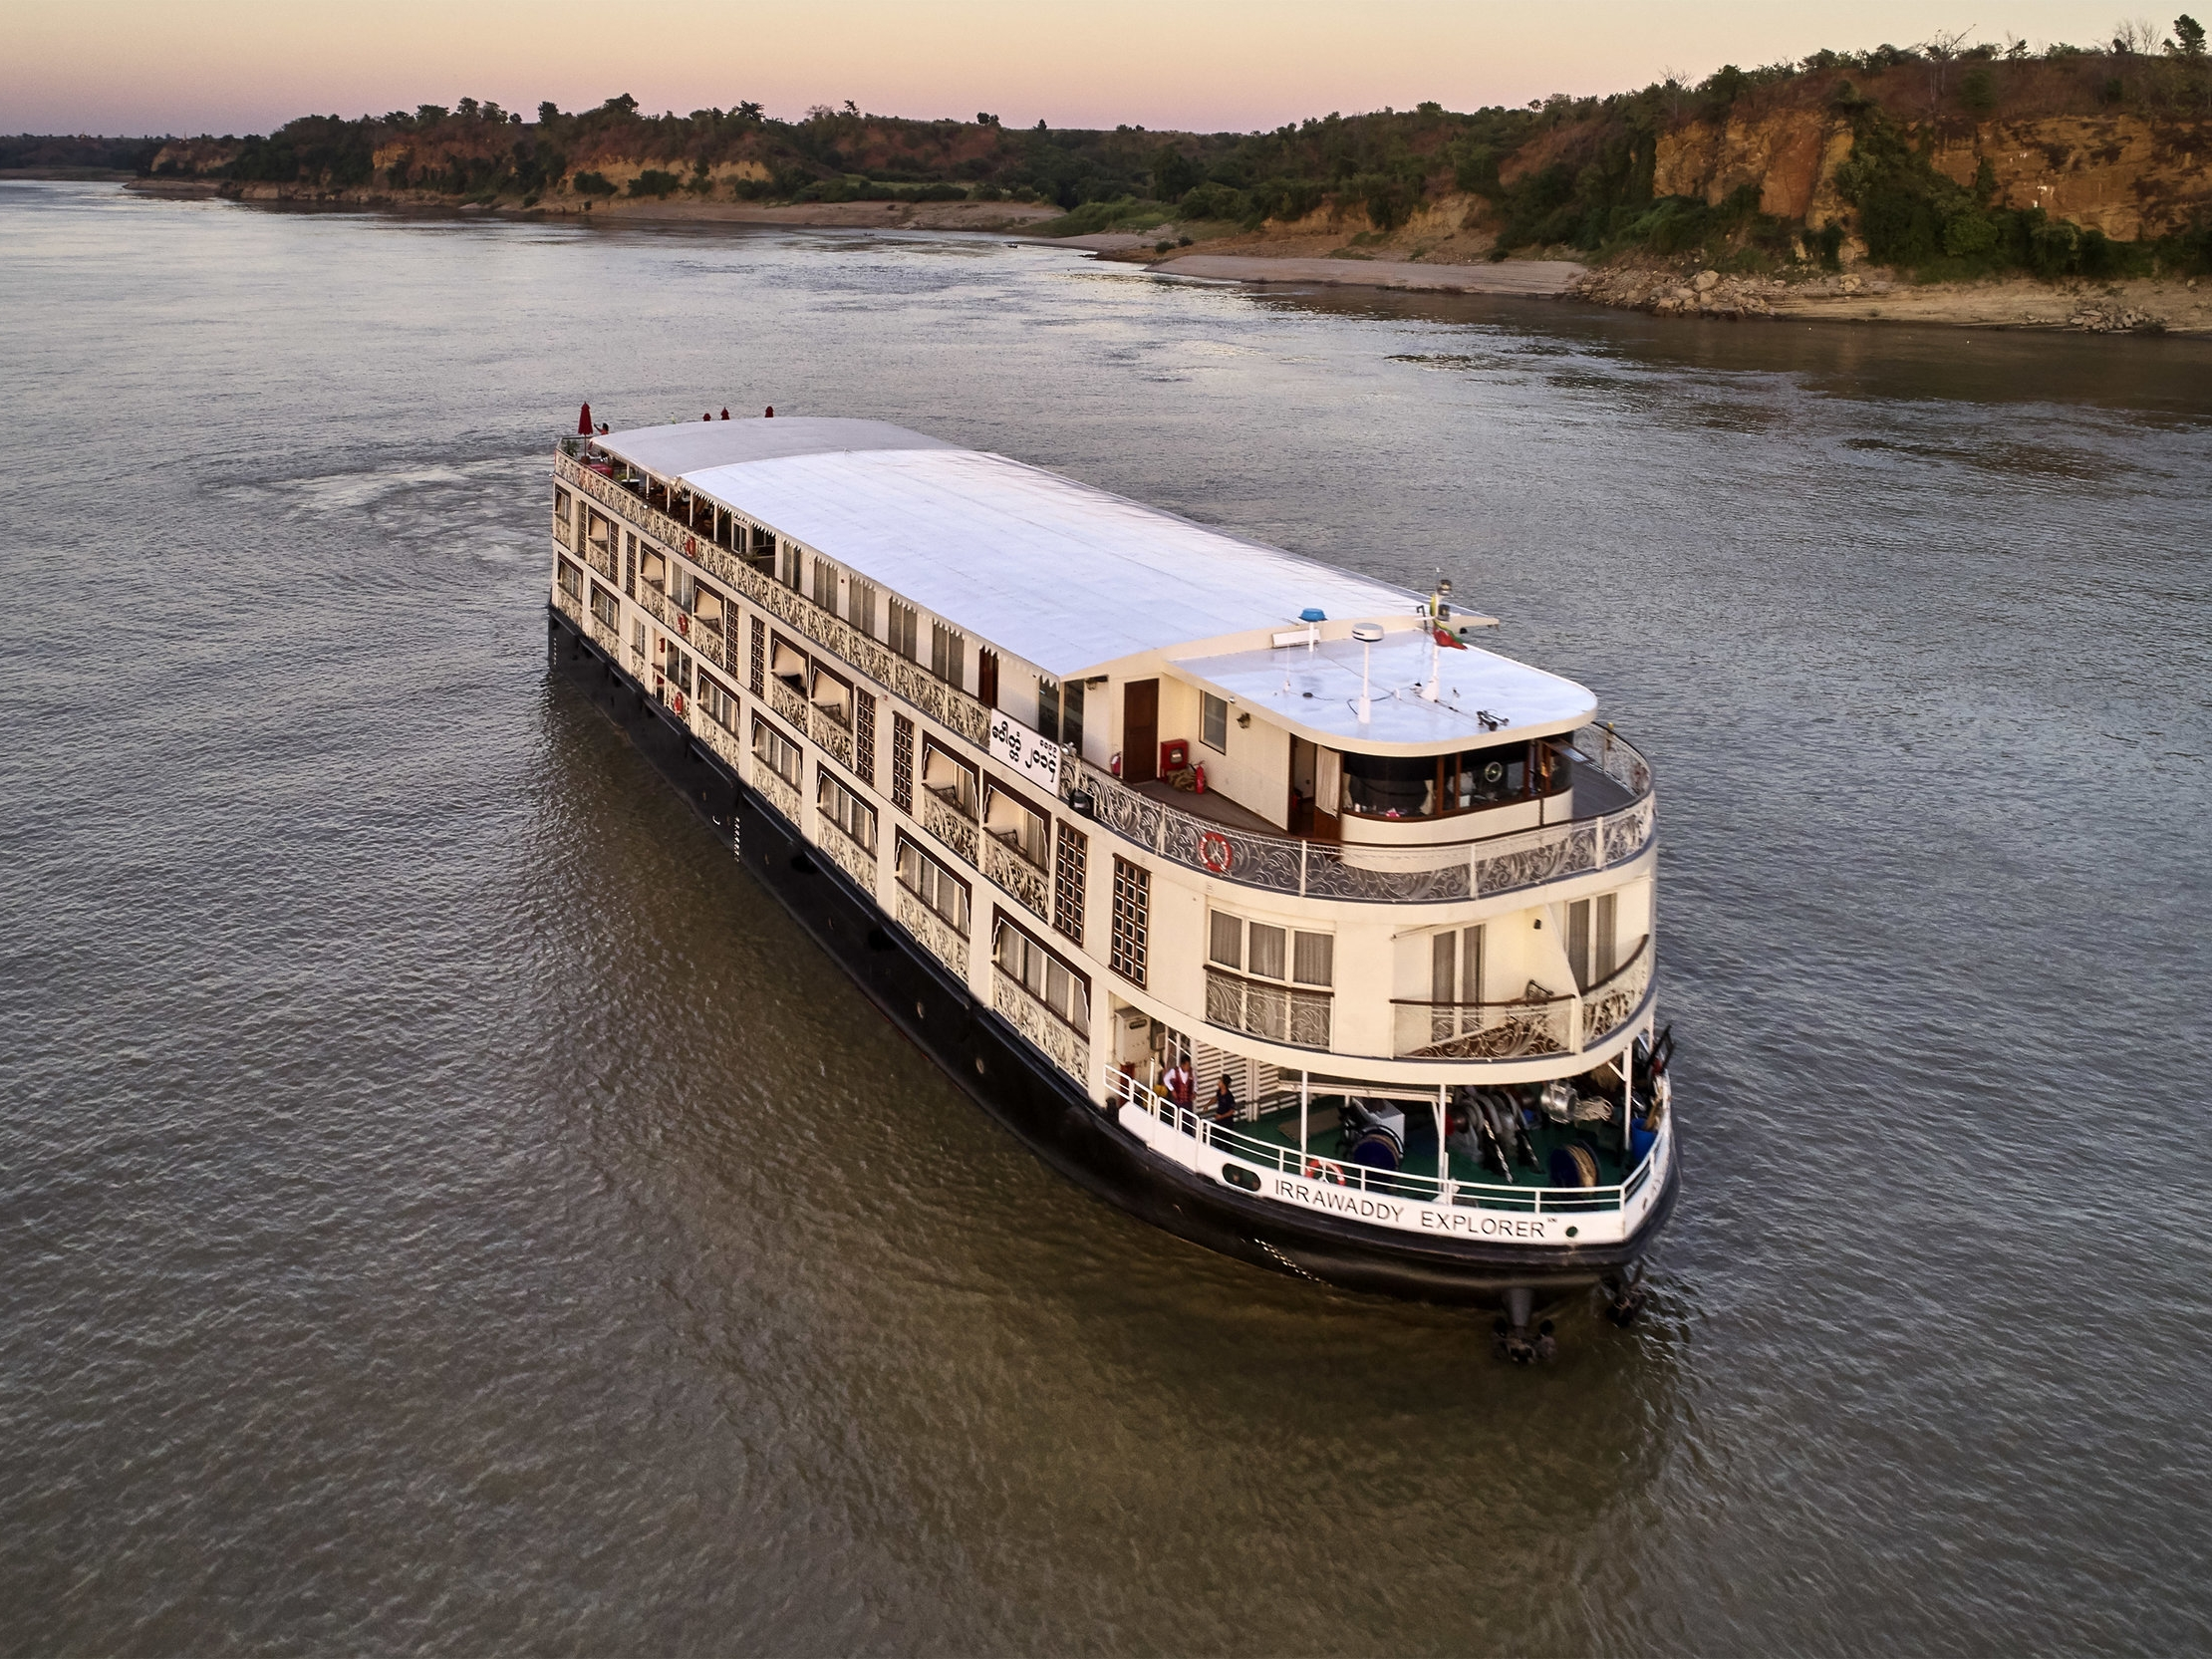 Irrawaddy Explorer - The sleek Irrawaddy Explorer is the newest and most luxurious of the fleet. Even before it leaves the dock, it takes you into another world of colonial elegance. With its beautiful art nouveau stairway, old-style furniture, gleaming hardwood floors, potted plants and classic light fixtures, it oozes colonial charm. This theme is carried into the whole interior of the ship, including the 28 luxurious suites, the Writers' Lounge, the Custom House dining room, the Spa Room and the Fitness Centre. The 28 luxury suites are named Mandalay, Kipling, Orwell and Maugham, all with floor-to-ceiling glass doors to enjoy the magnificent views of the Irrawaddy River. Each suite comes with its own artwork. For the duration of the cruise, live in another time and place while enjoying modern conveniences.